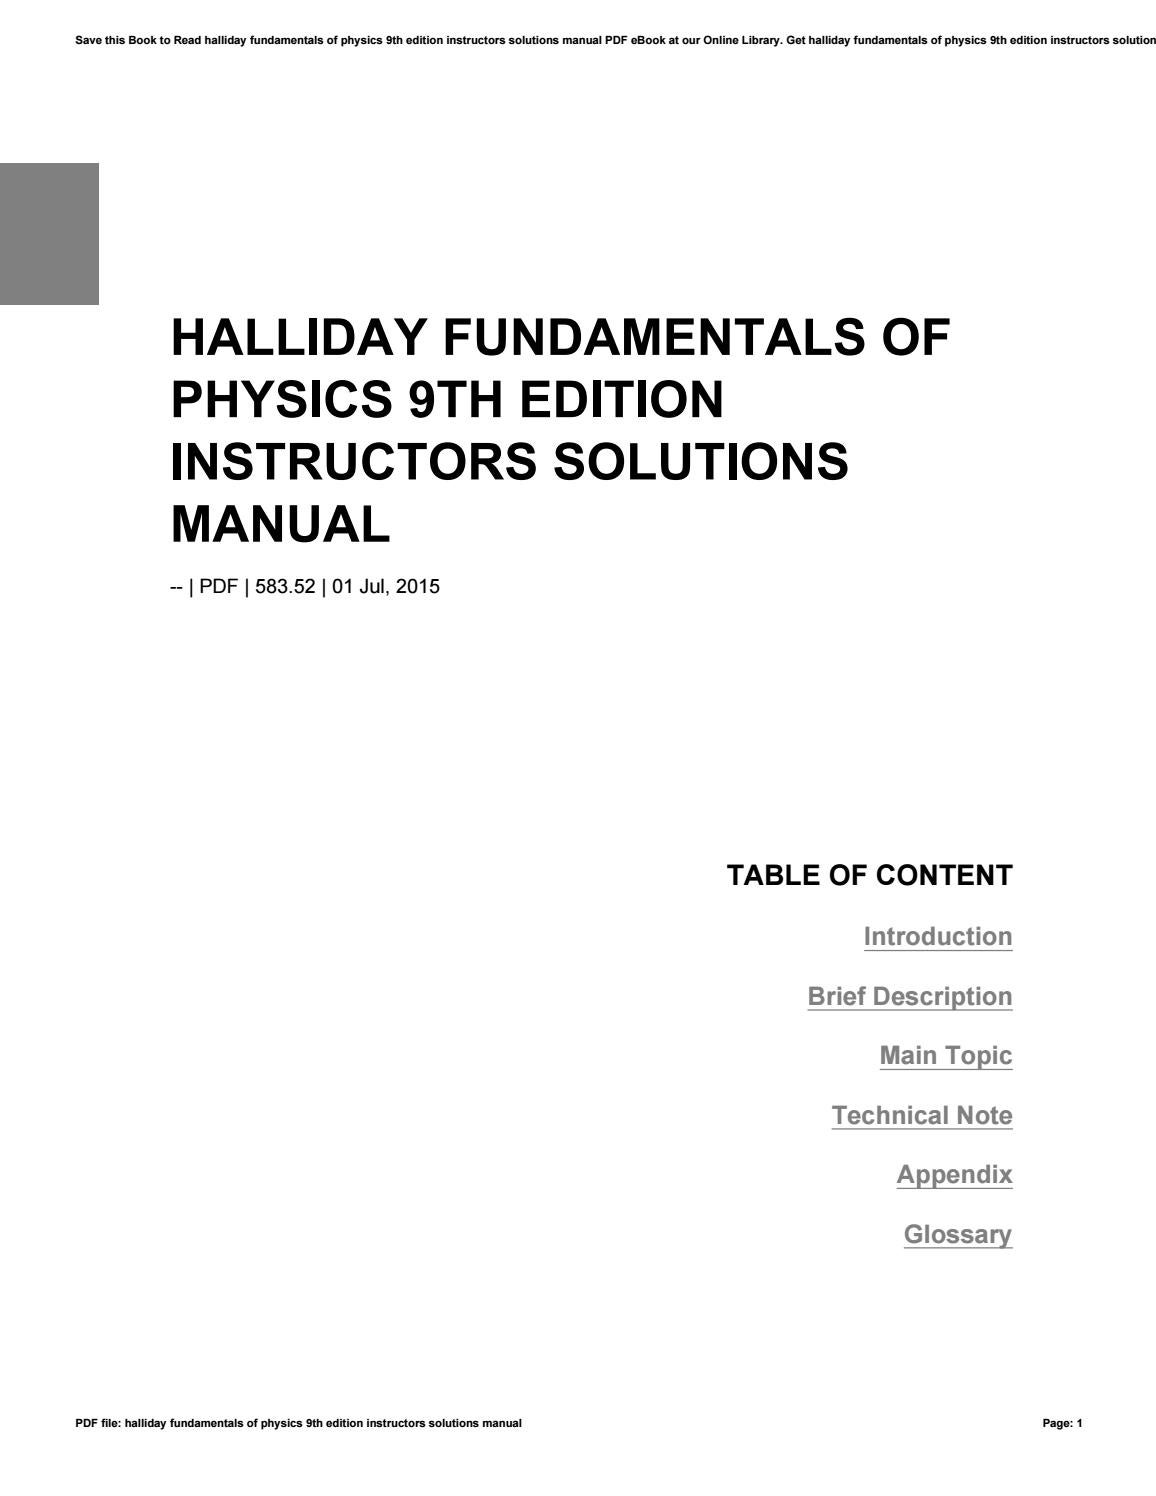 Halliday fundamentals of physics 9th edition instructors solutions manual  by farfurmail86 - issuu